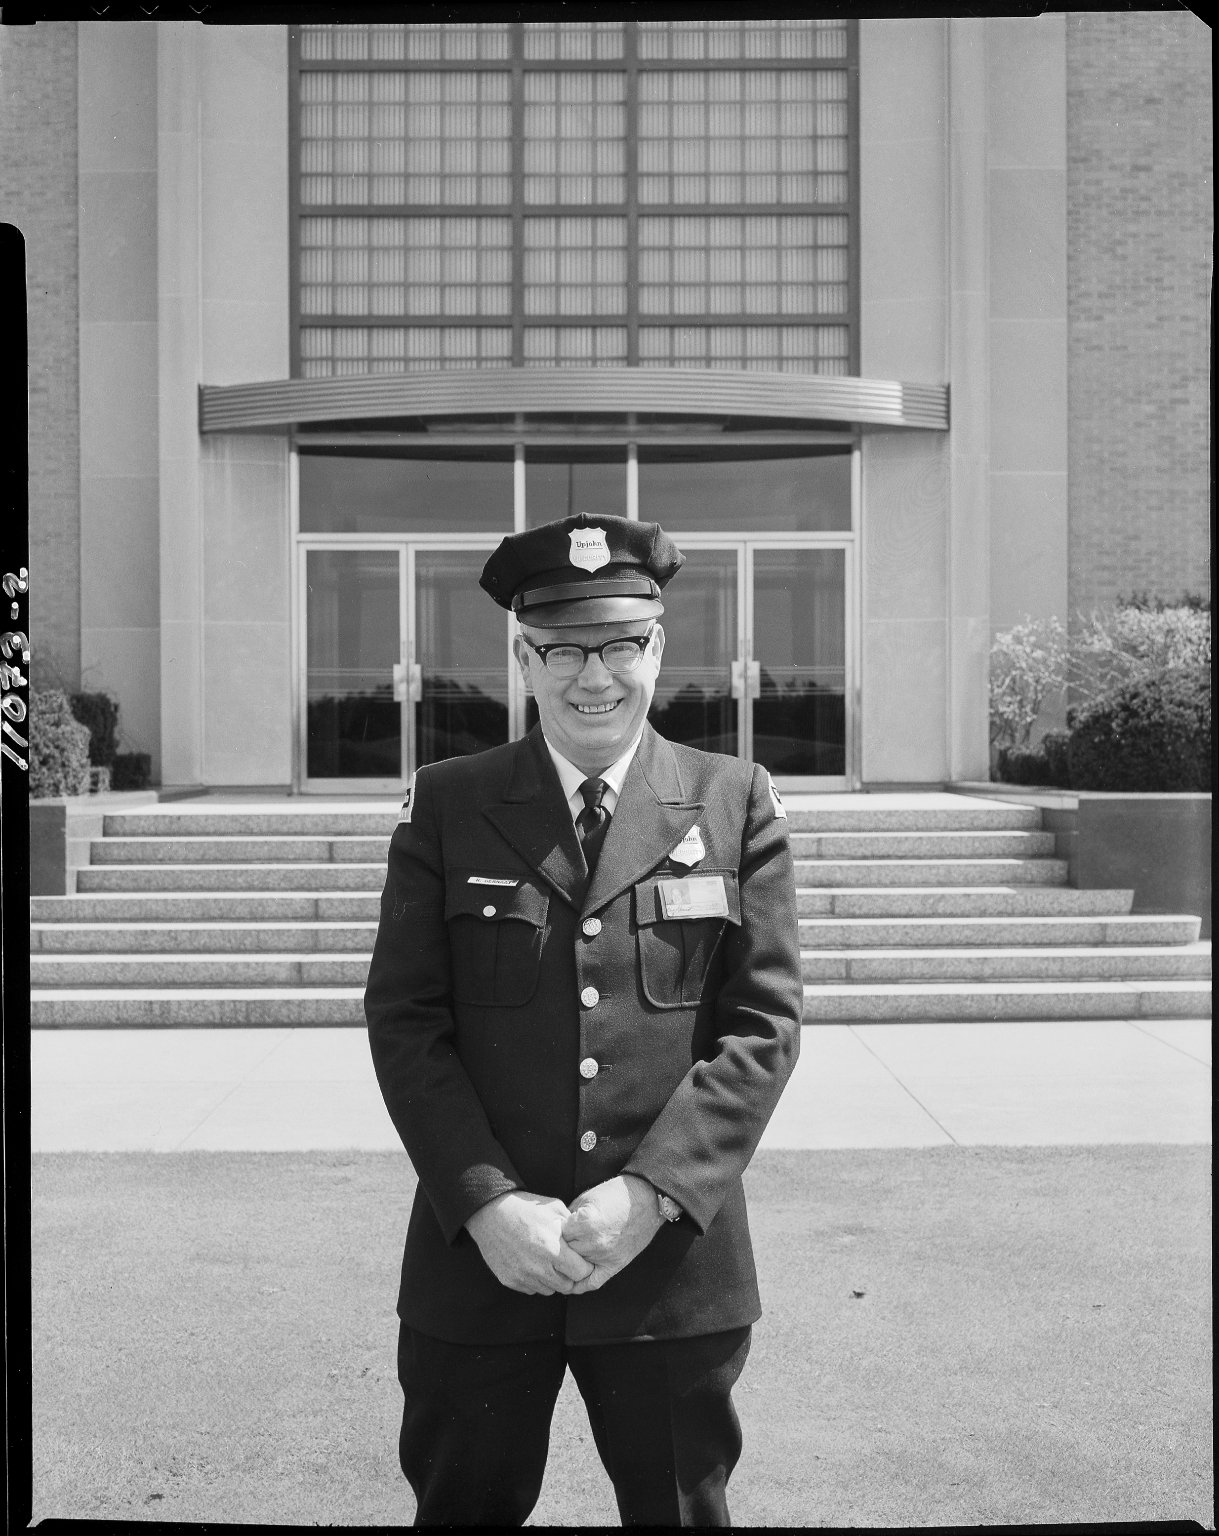 Raymond Gernaat, Upjohn Company security guard in front of an Upjohn building